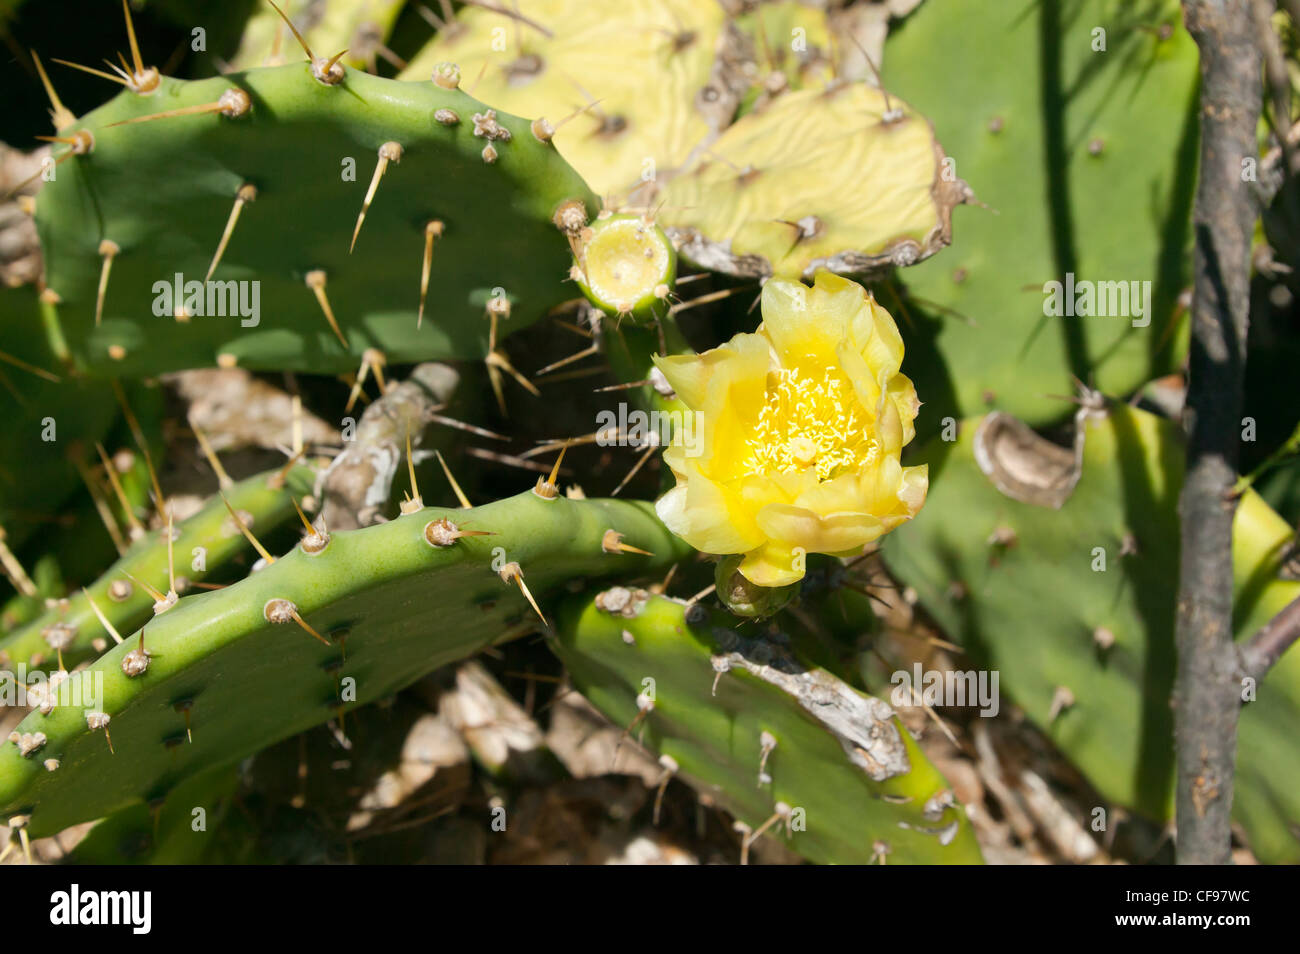 Close-up of a Prickly Pear plant with a (Opuntia robusta) flower. Stock Photo